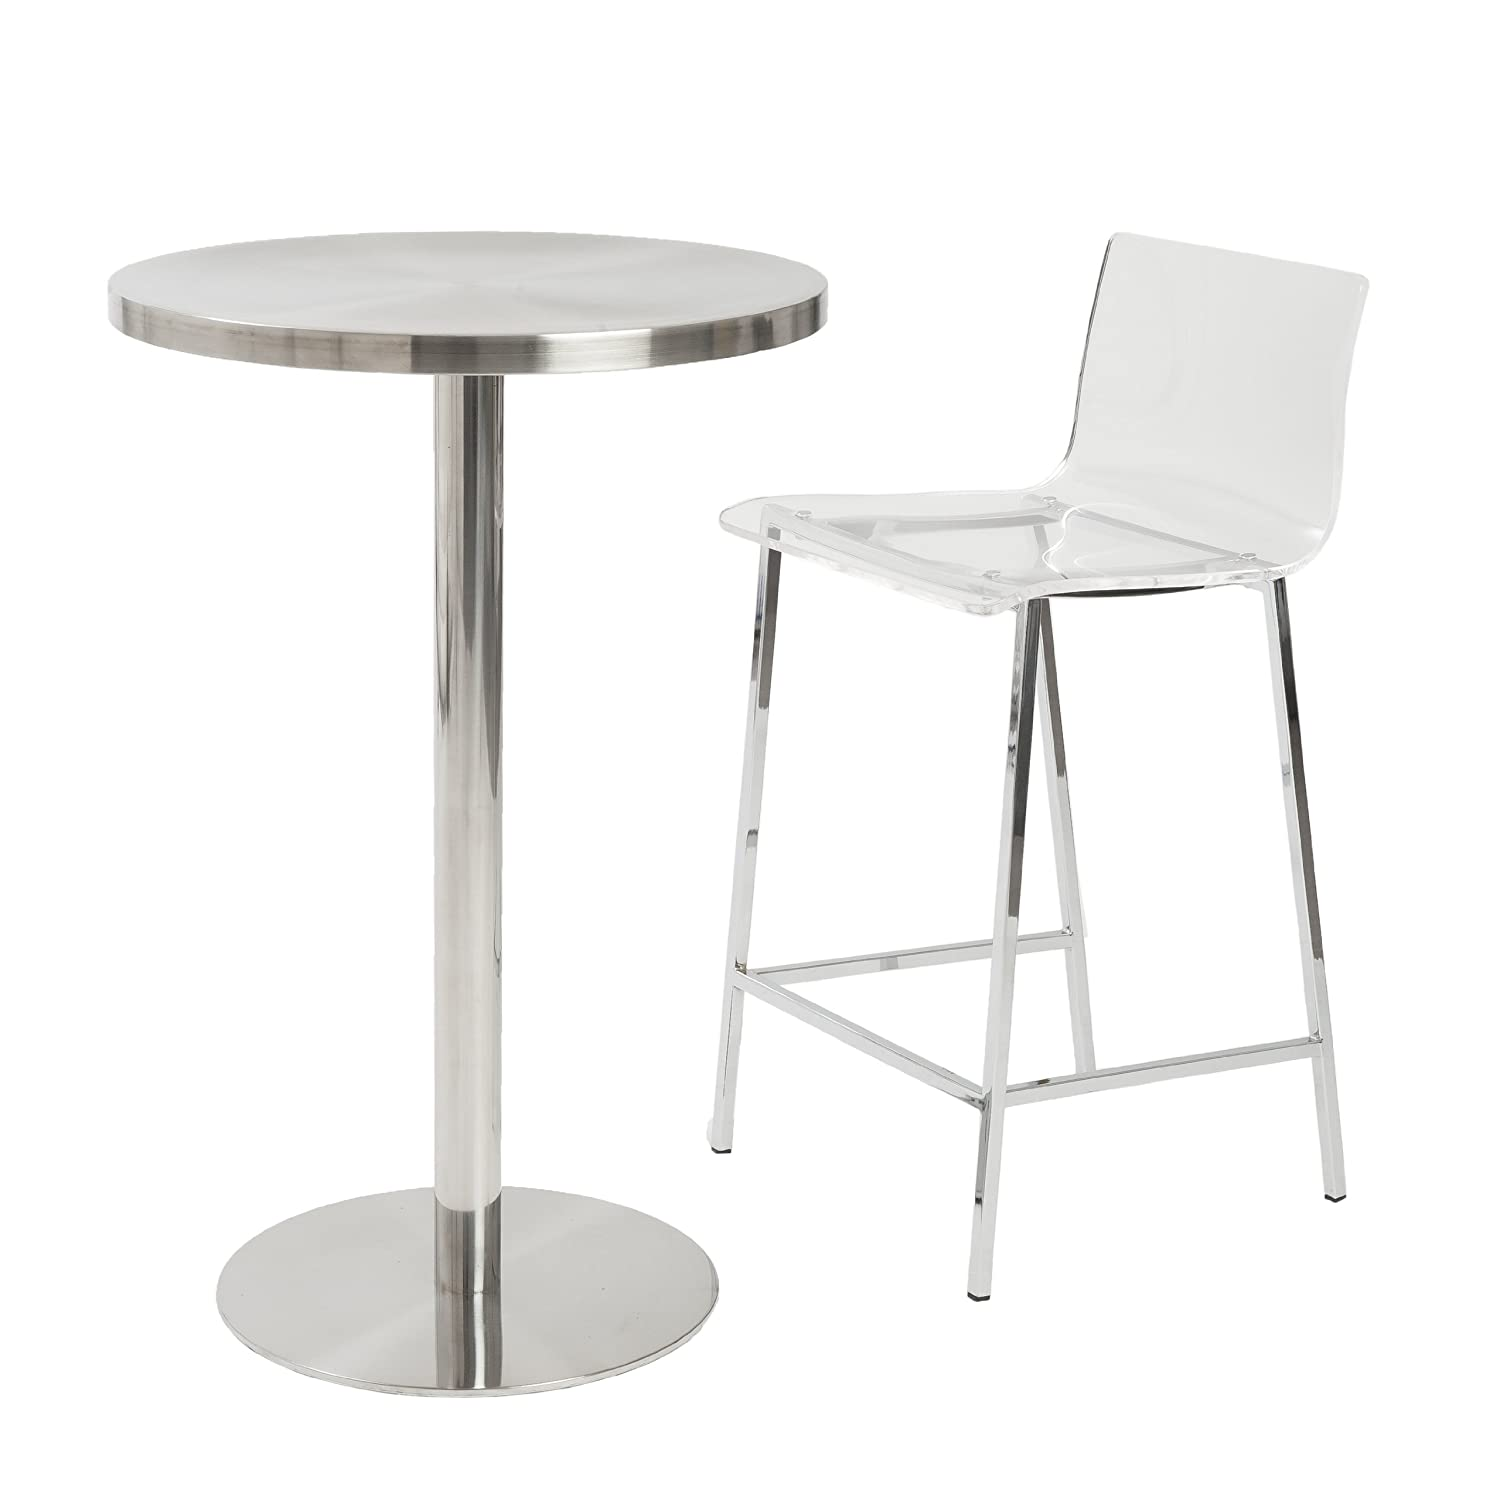 Acrylic Counter Height Stools Part - 18: Amazon.com: Euro Style Chloe Clear Acrylic Counter Height Stool With  Chromed Base, Set Of 2: Kitchen U0026 Dining